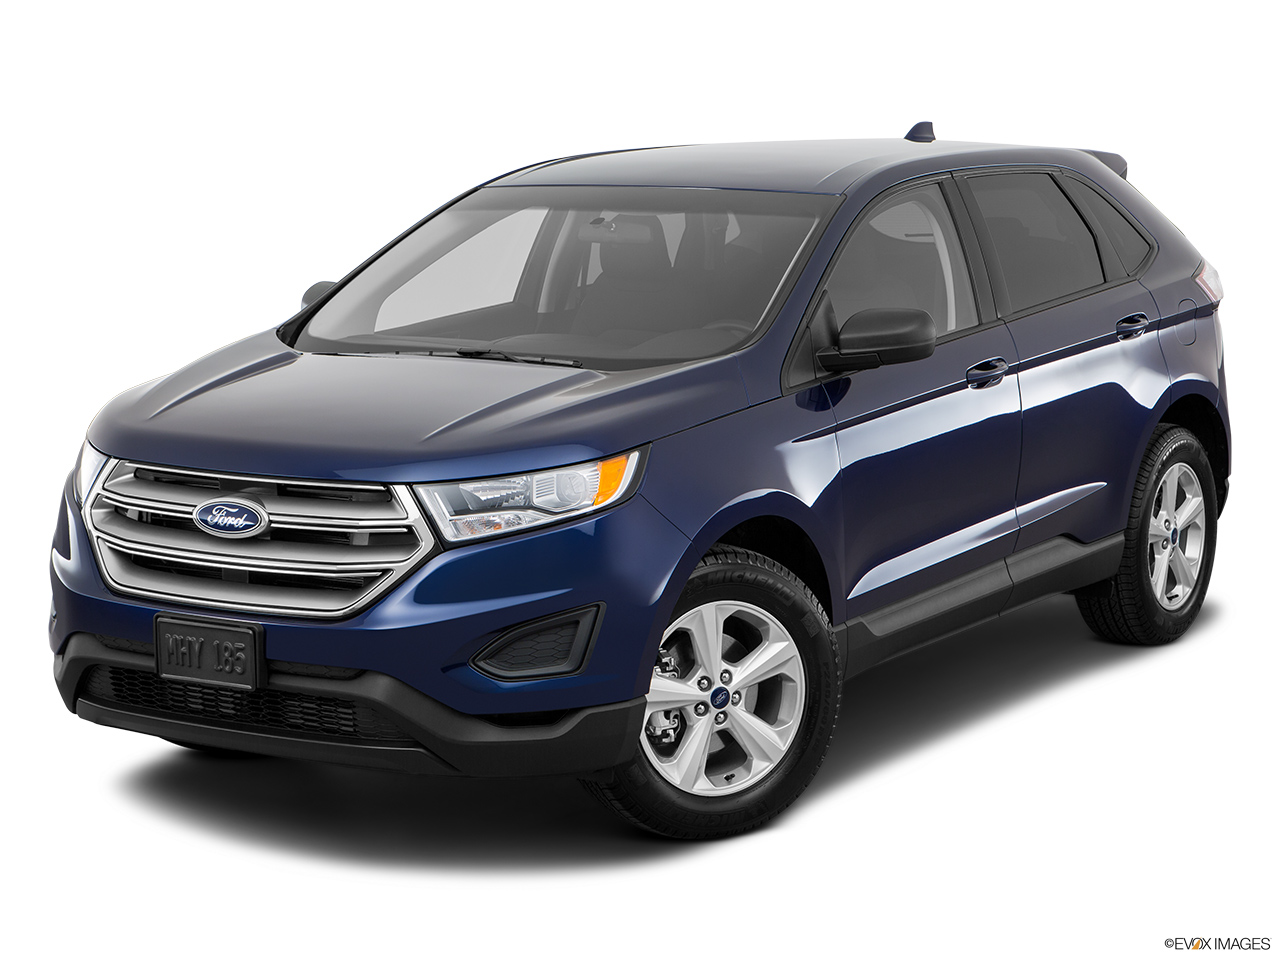 ford edge uae prices autos post. Black Bedroom Furniture Sets. Home Design Ideas